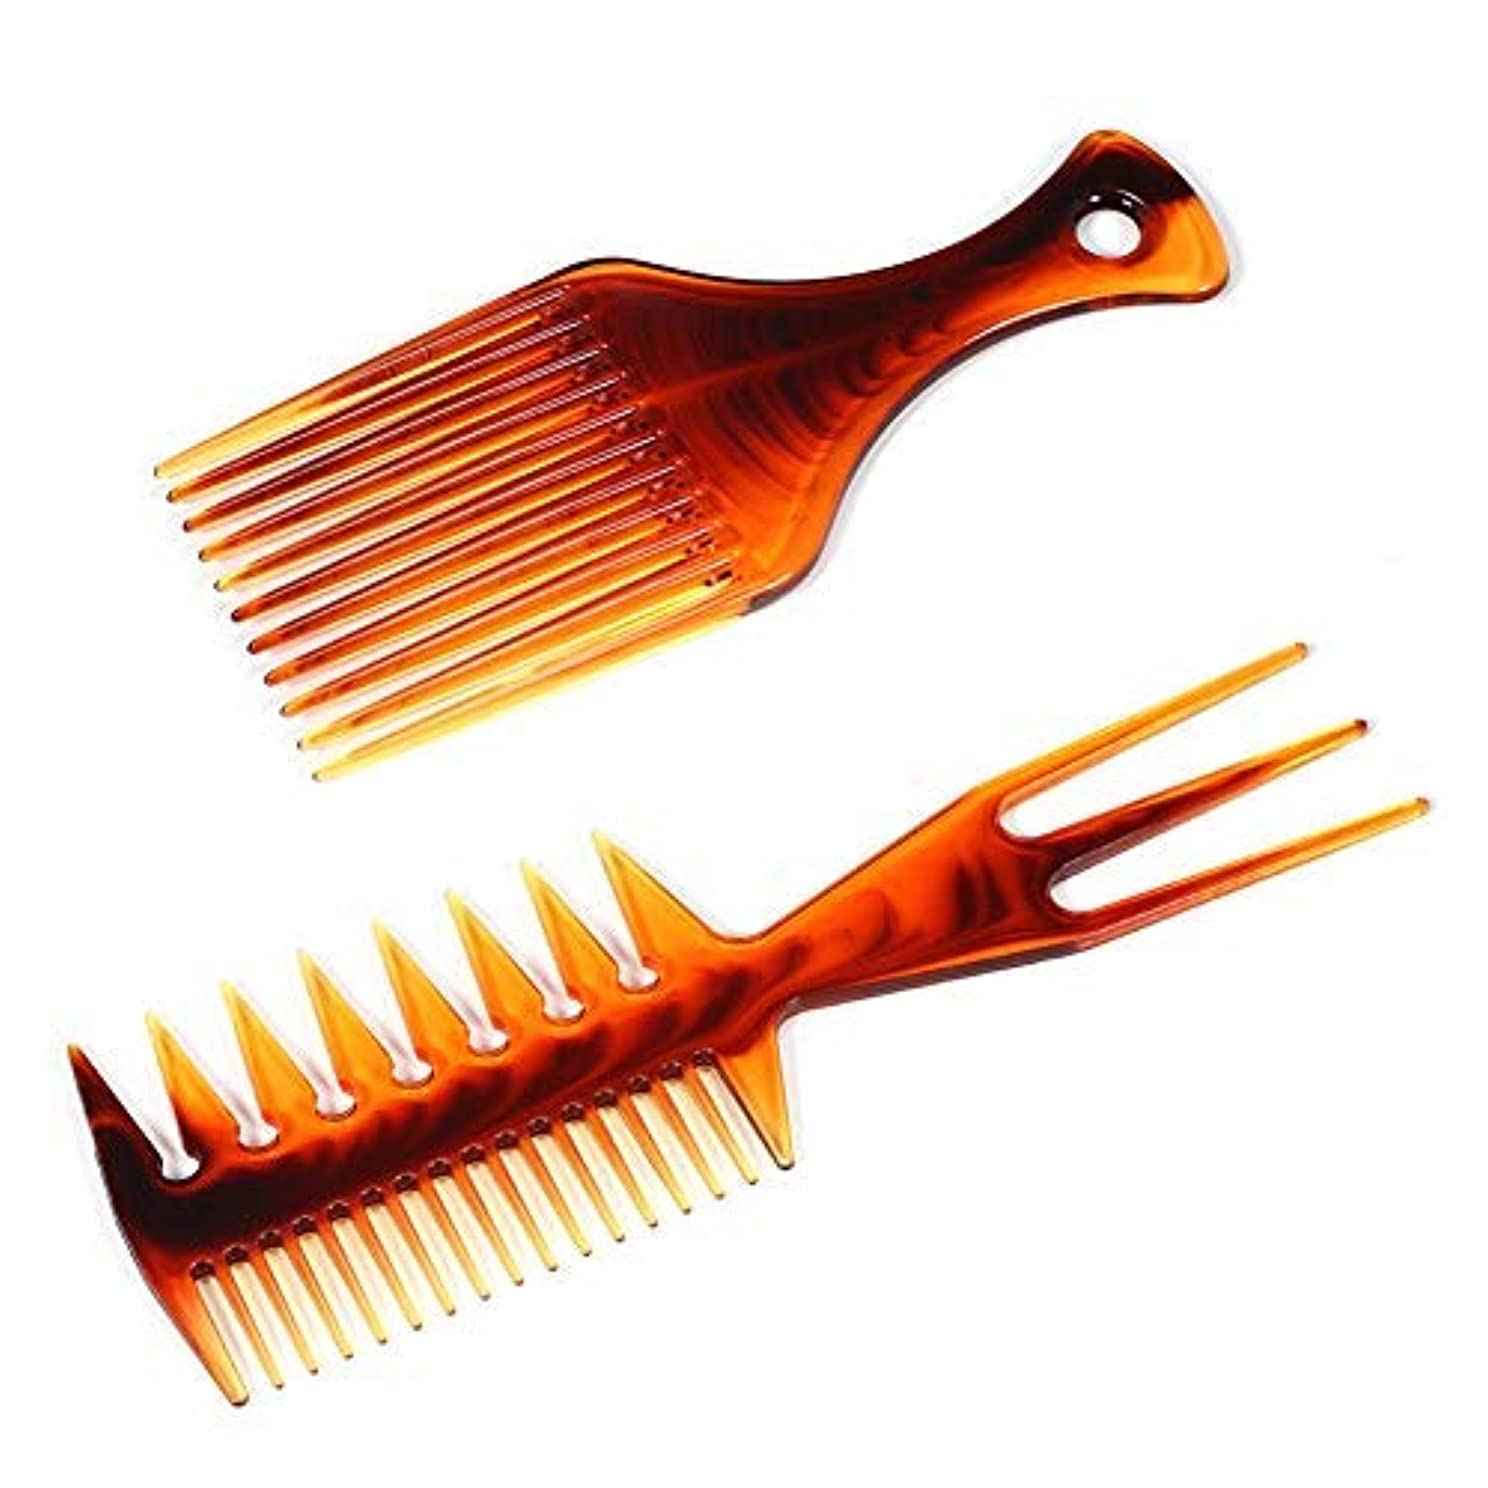 検閲俳優薬局2 Pieces Afro Pick Comb Fish Comb Afro Comb Hair Pick Comb Hair Styling Afro Hair Lift Pick Comb infused with...